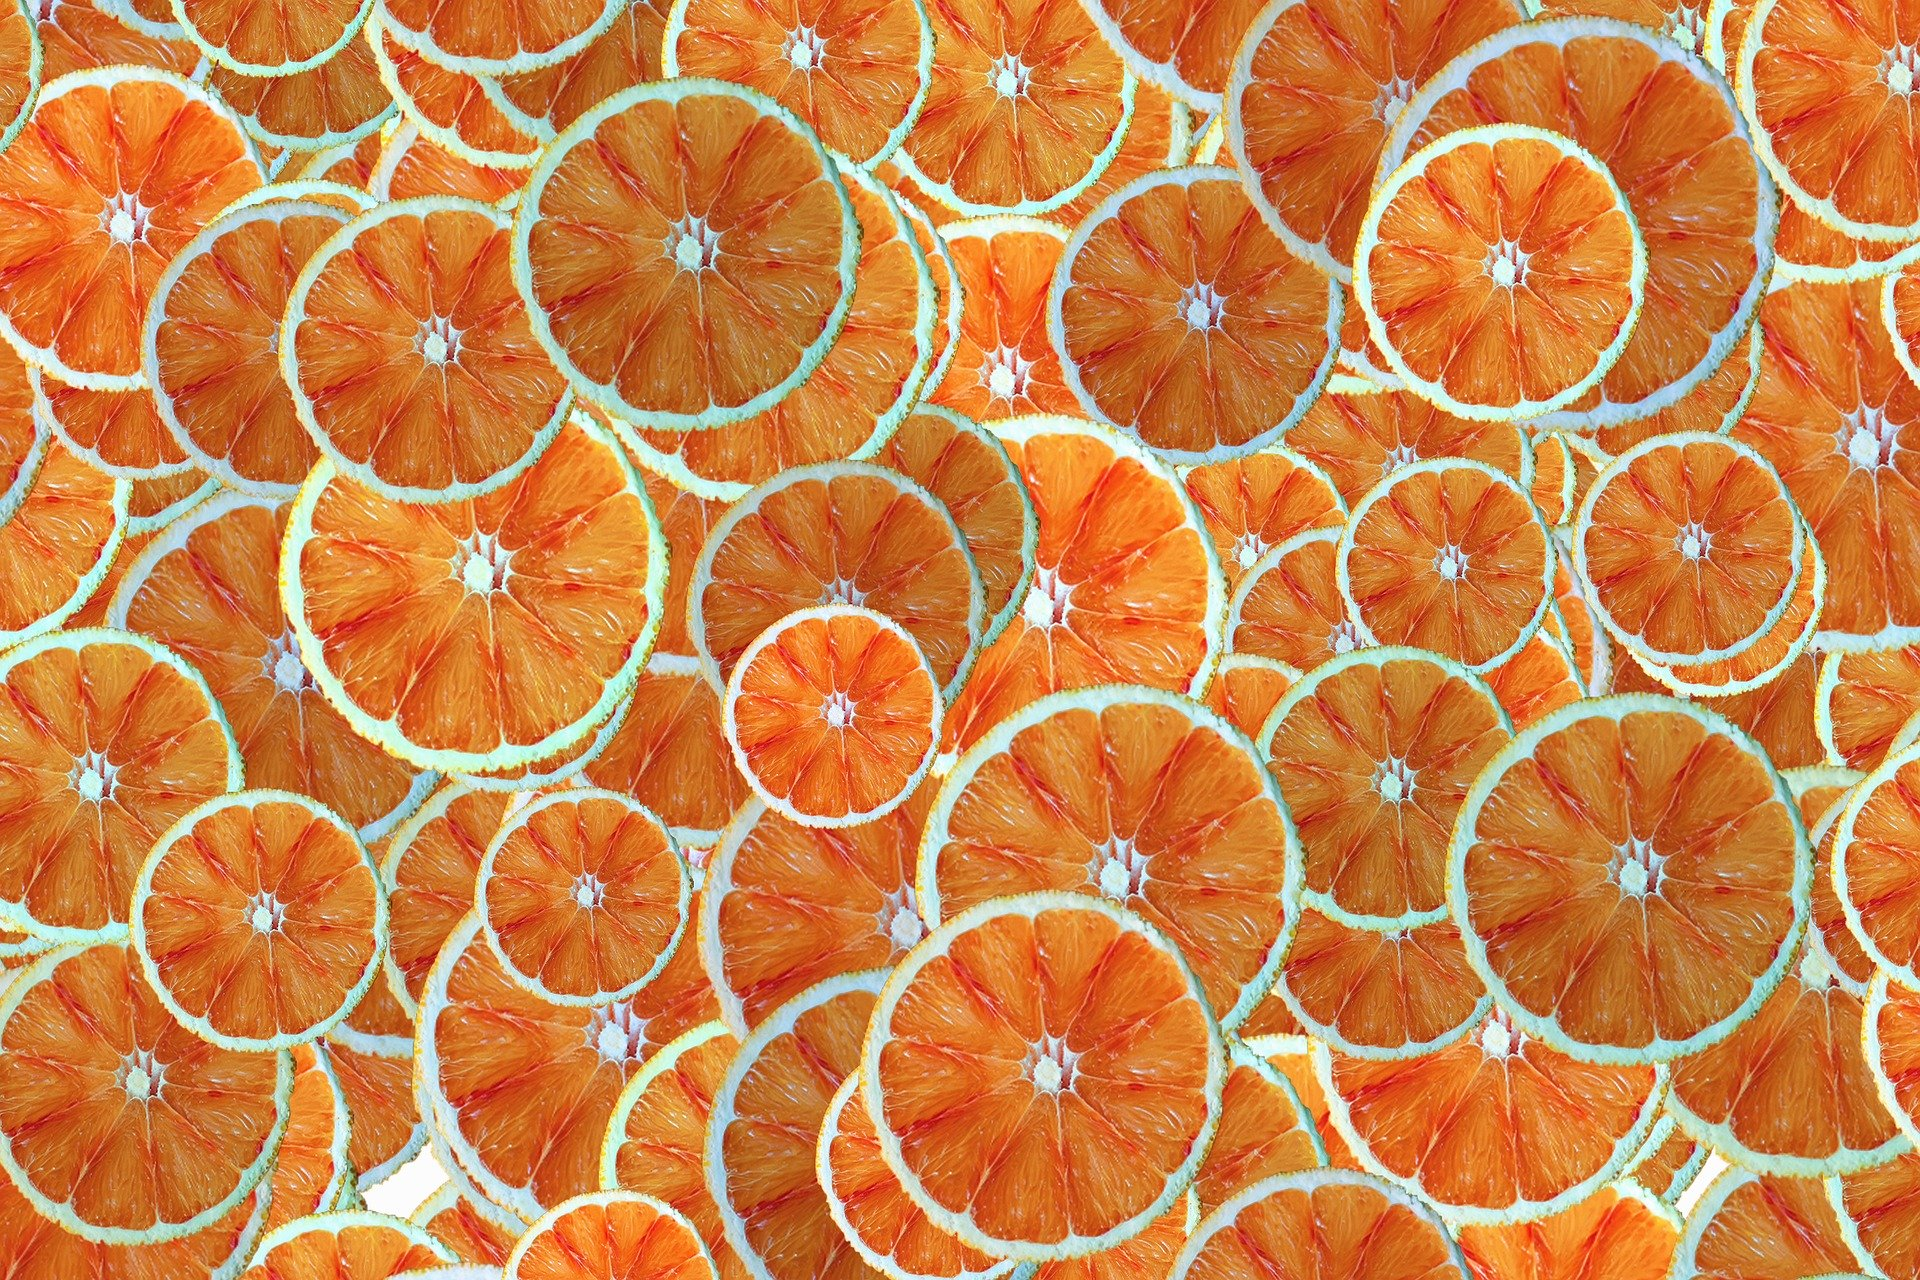 Edited photo of lots of slices of orange repeated